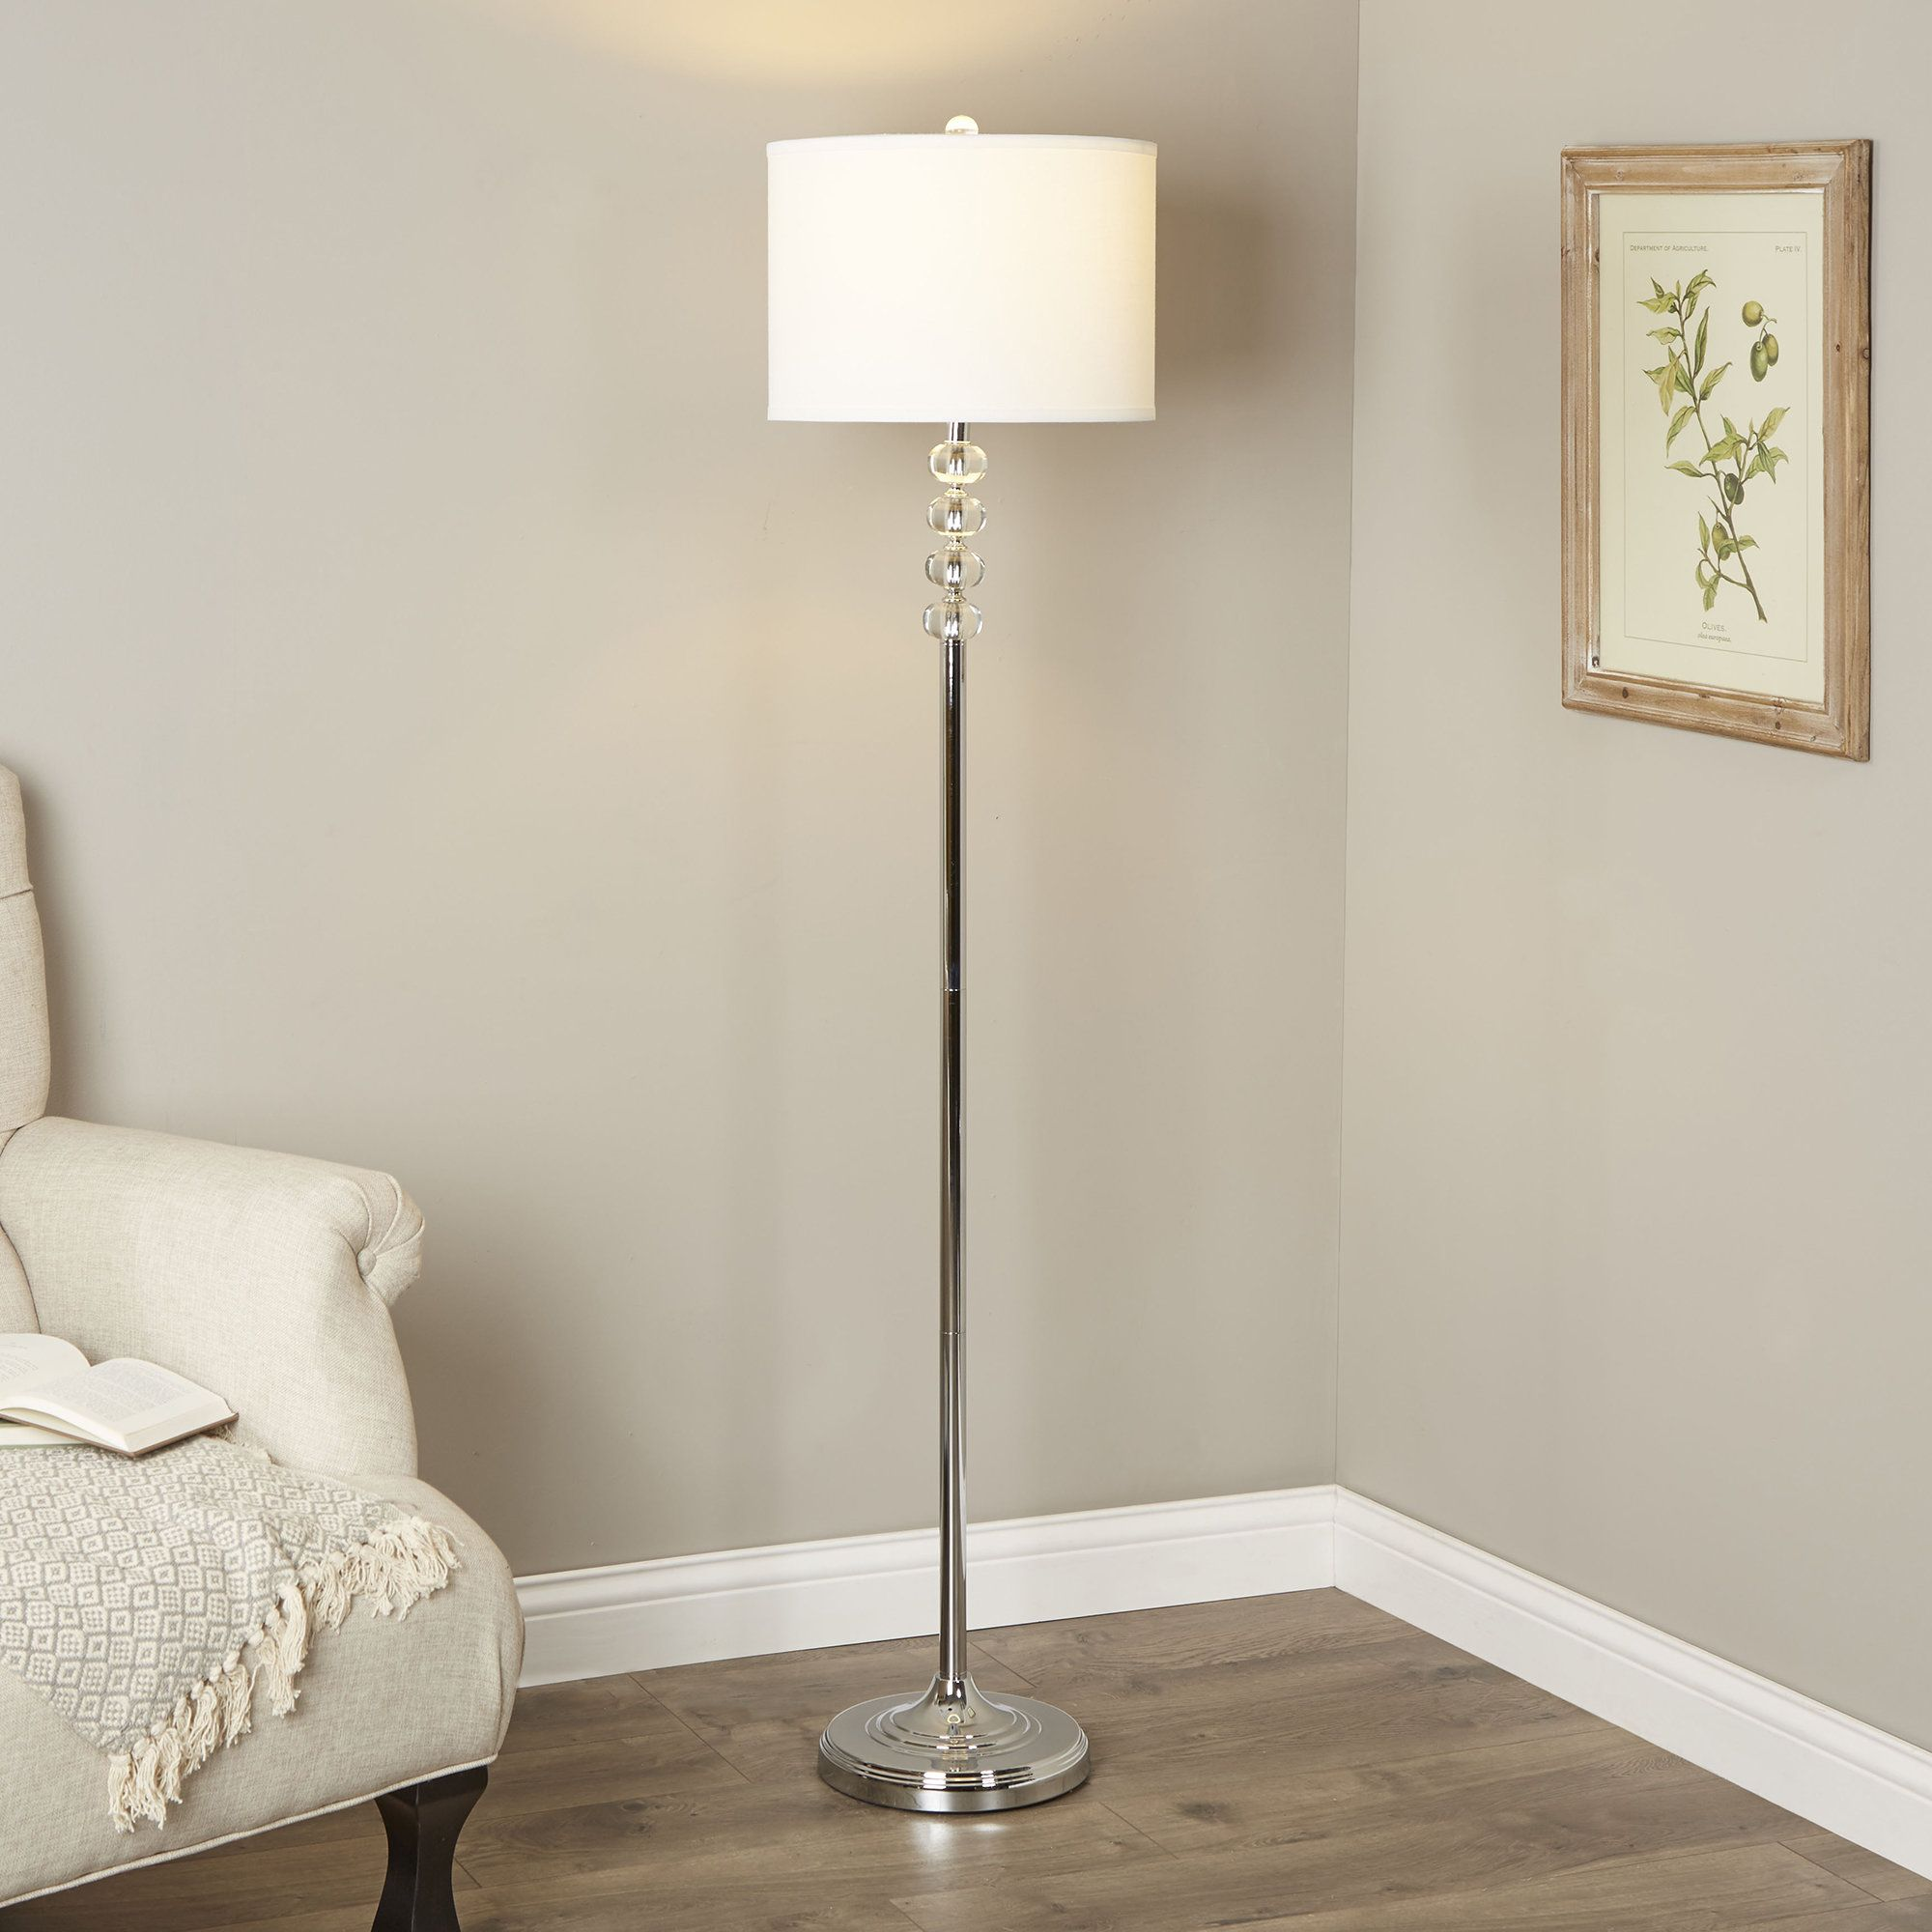 Burnley 6025 Floor Lamp